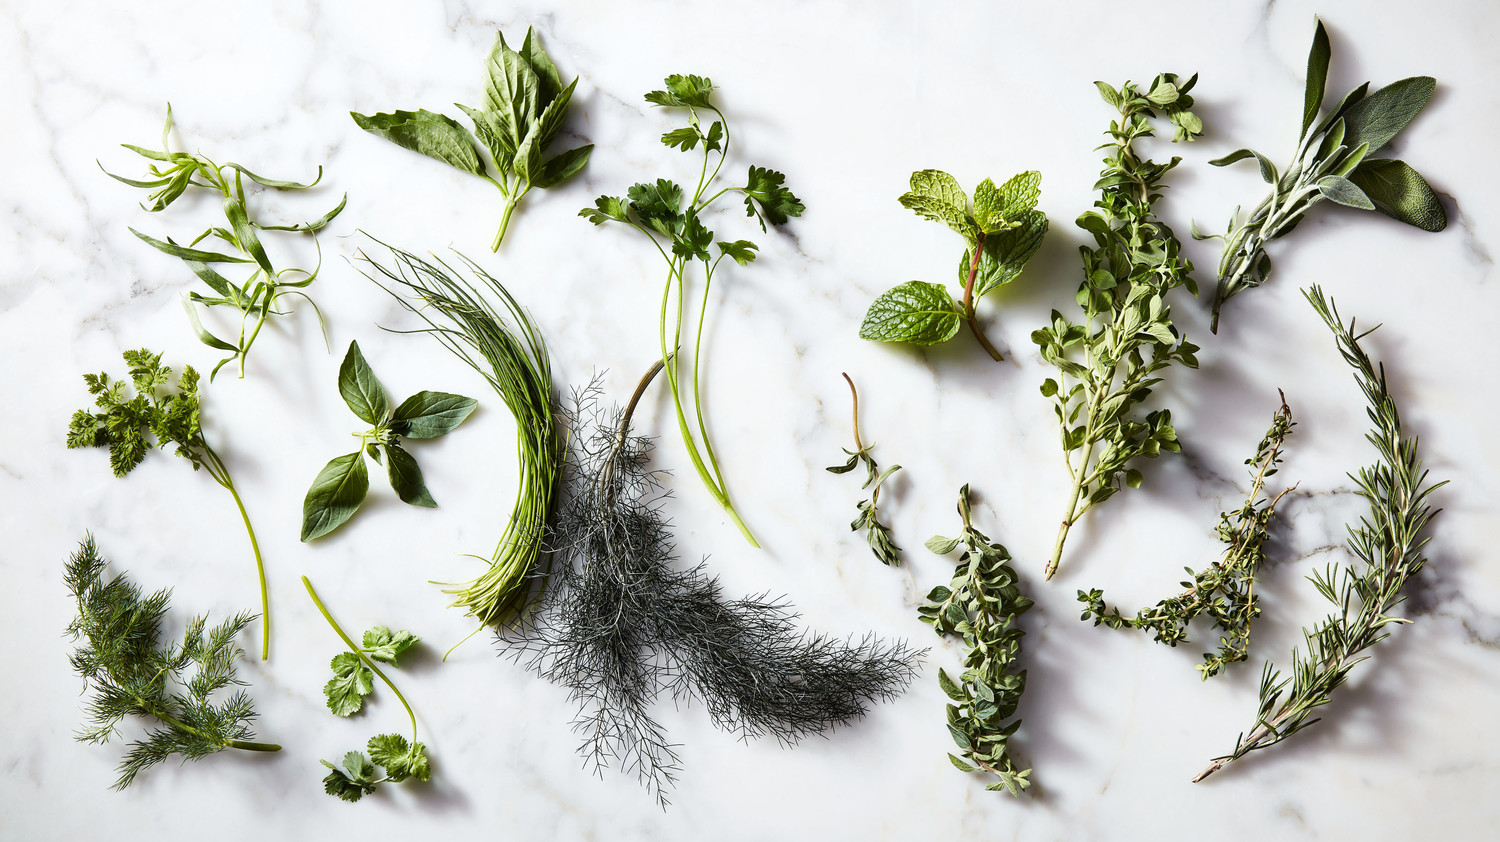 herbs thyme savory sage rosemary marjoram mint oregano basil tarragon cilantro dill parsley chives chervil